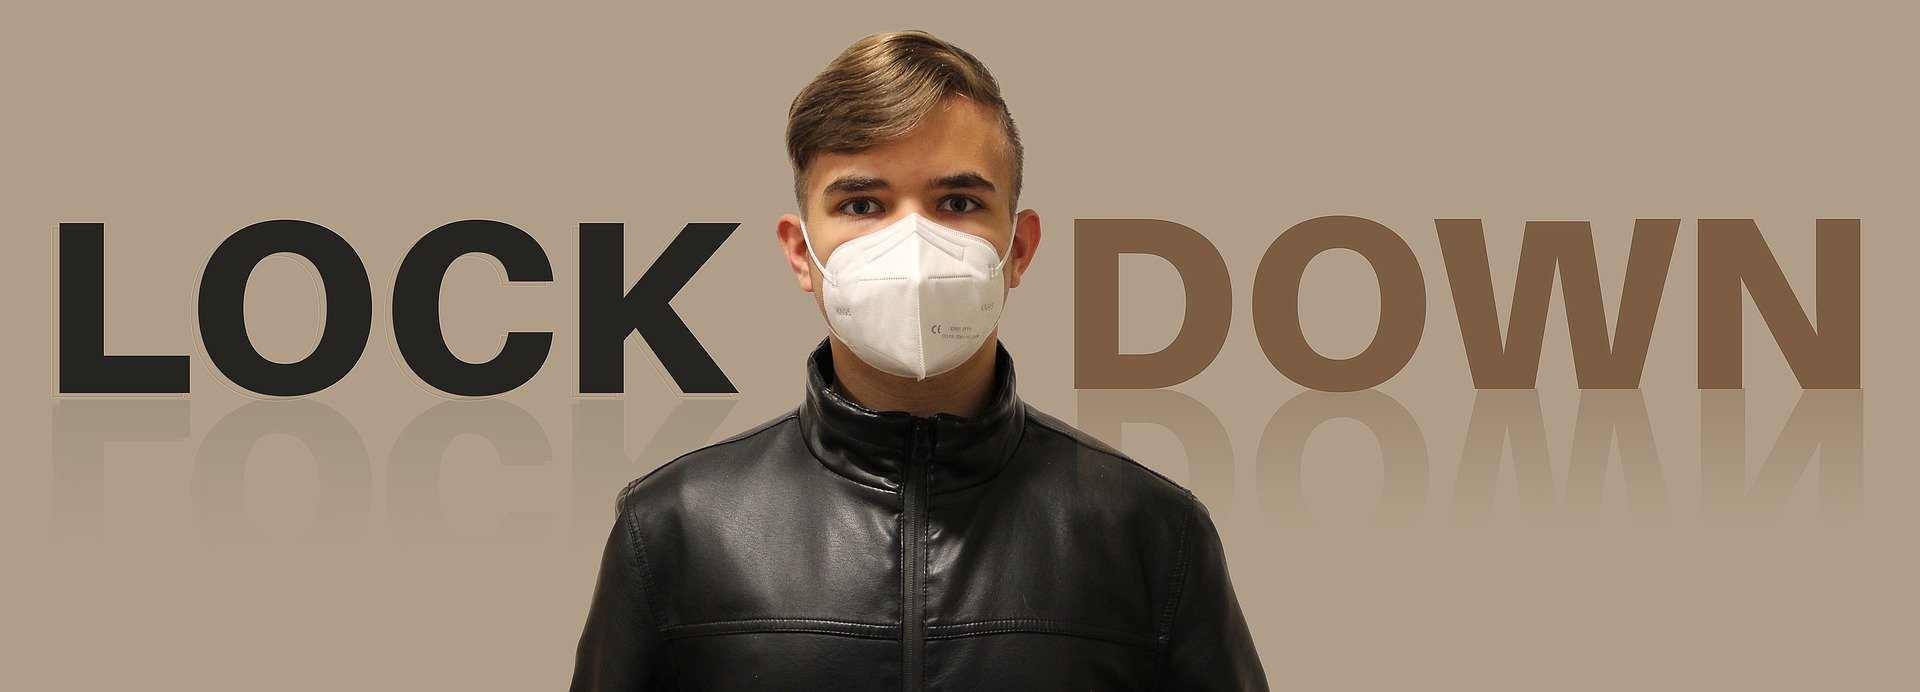 "Image of boy wearing mask in front of text saying ""Lock Down"""